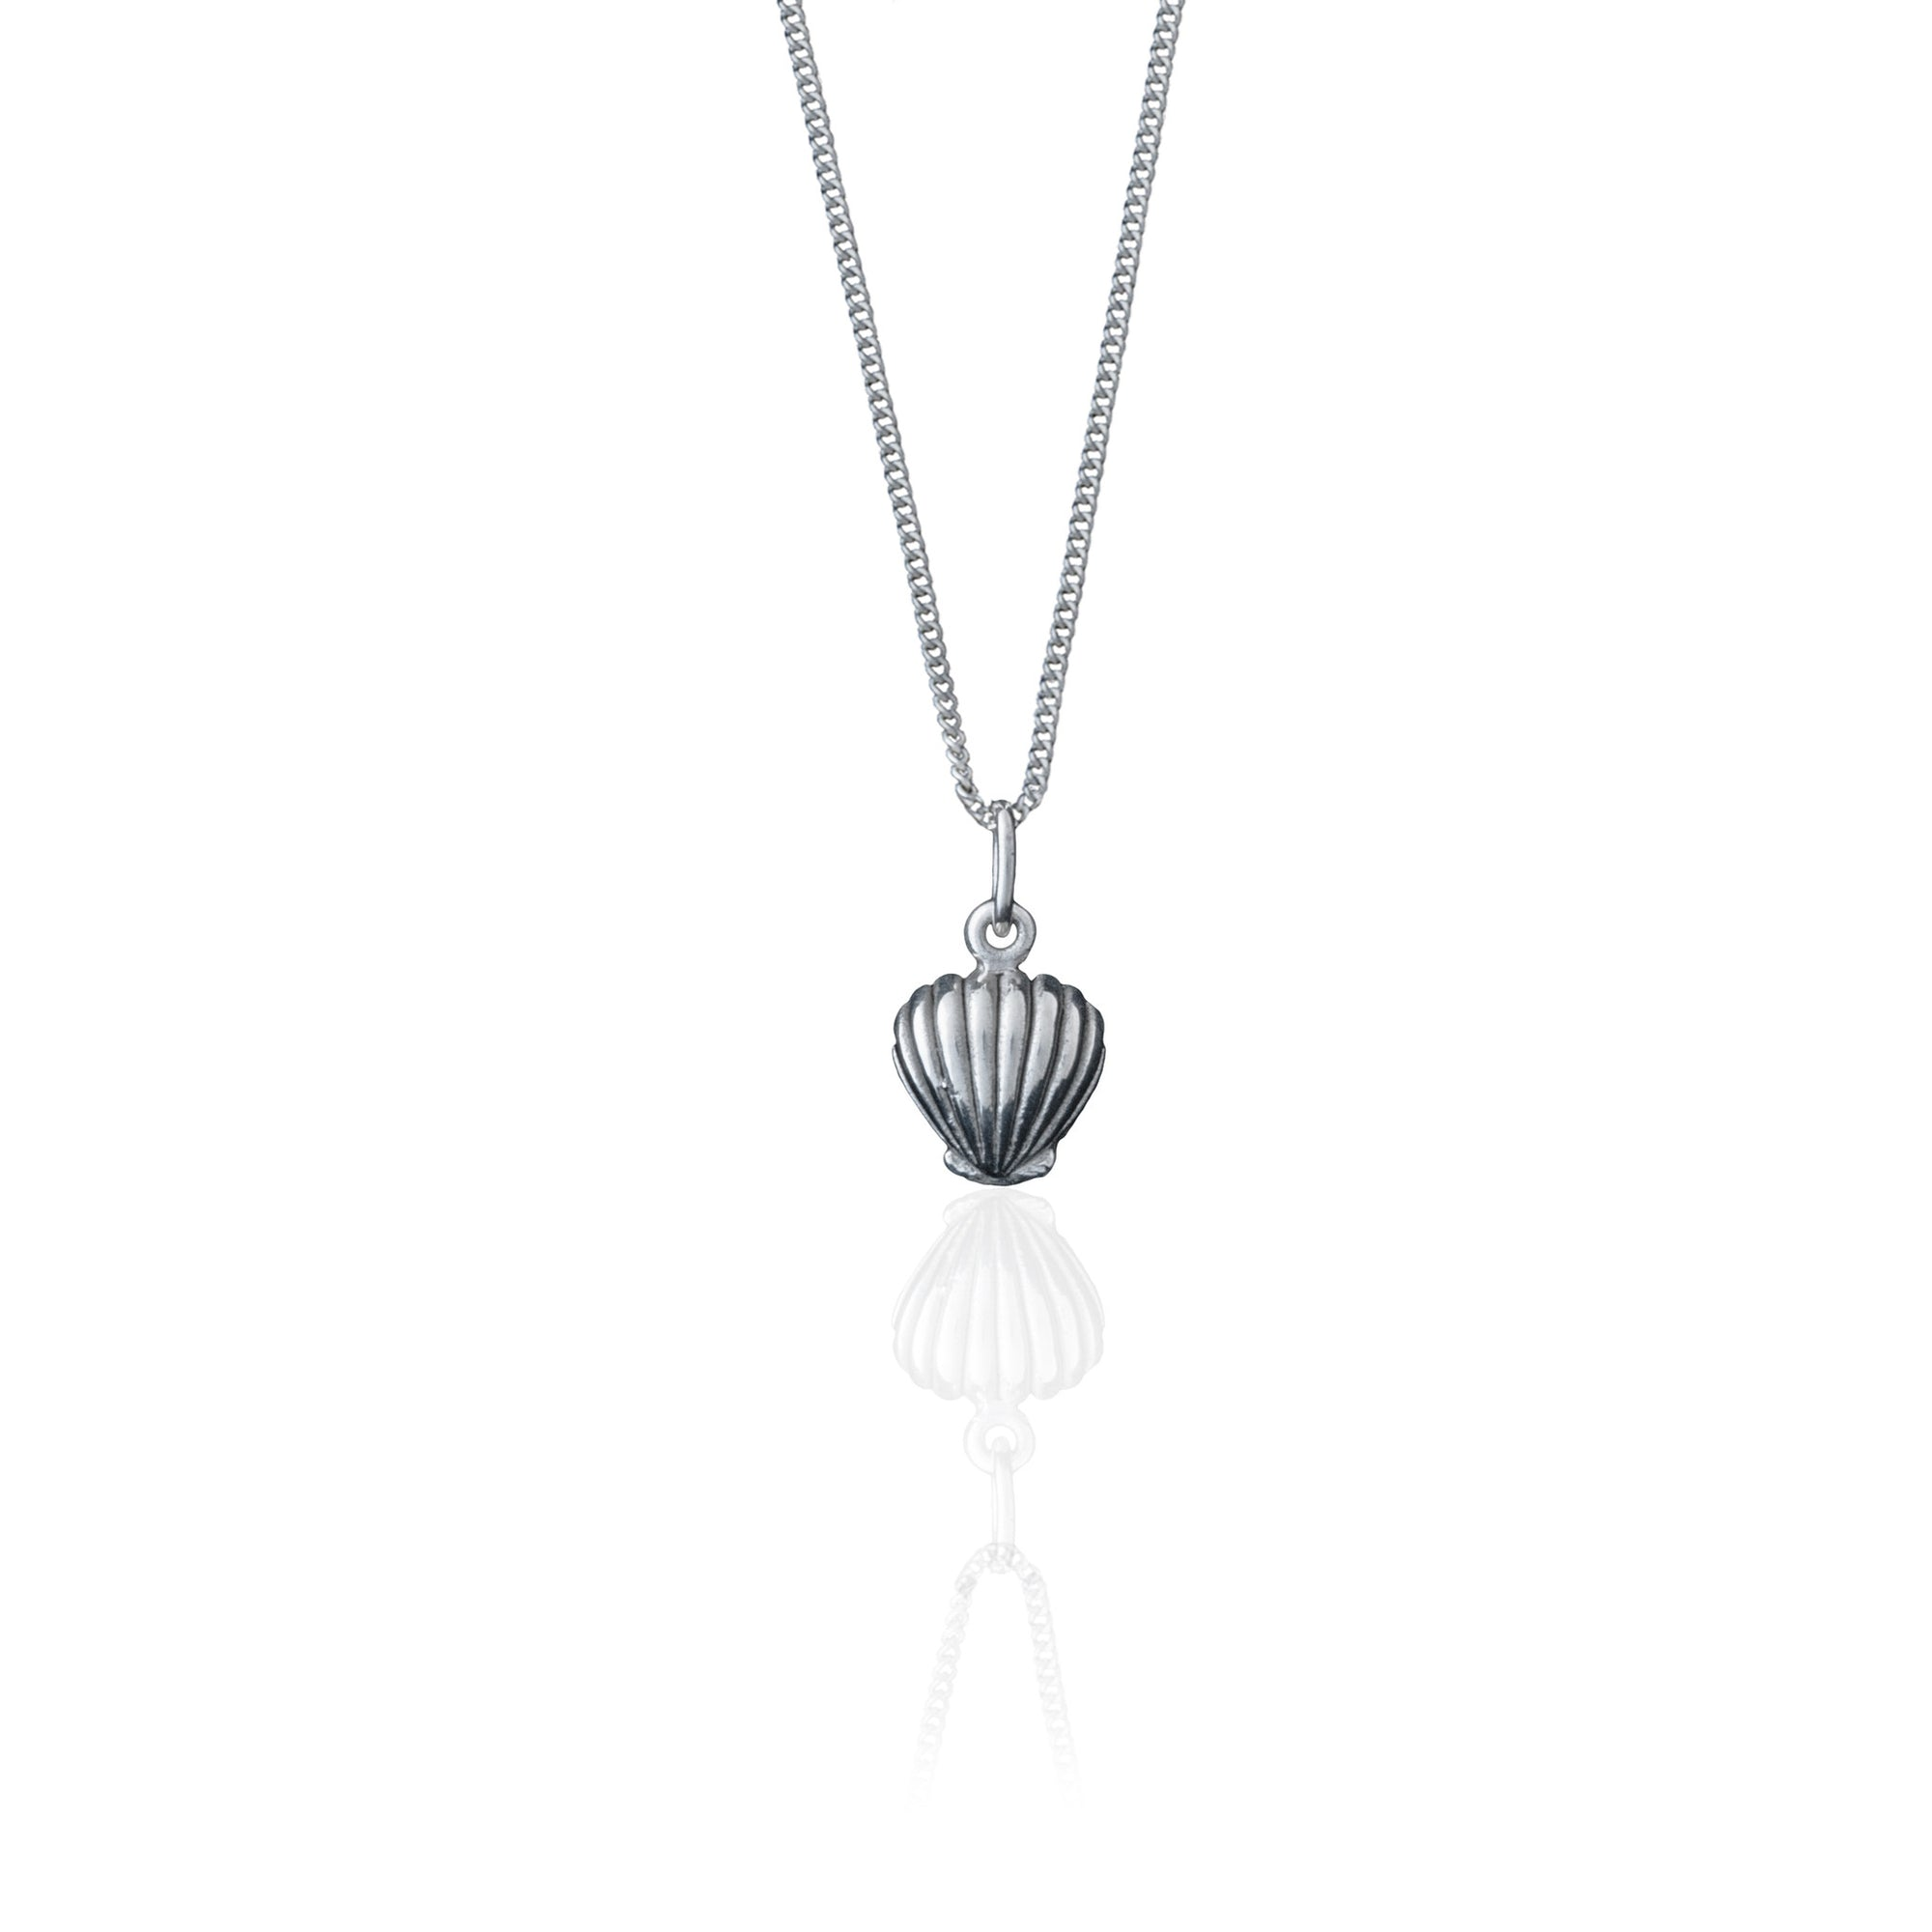 liss necklaces jewelry of necklace lover collections blissfully image the moon